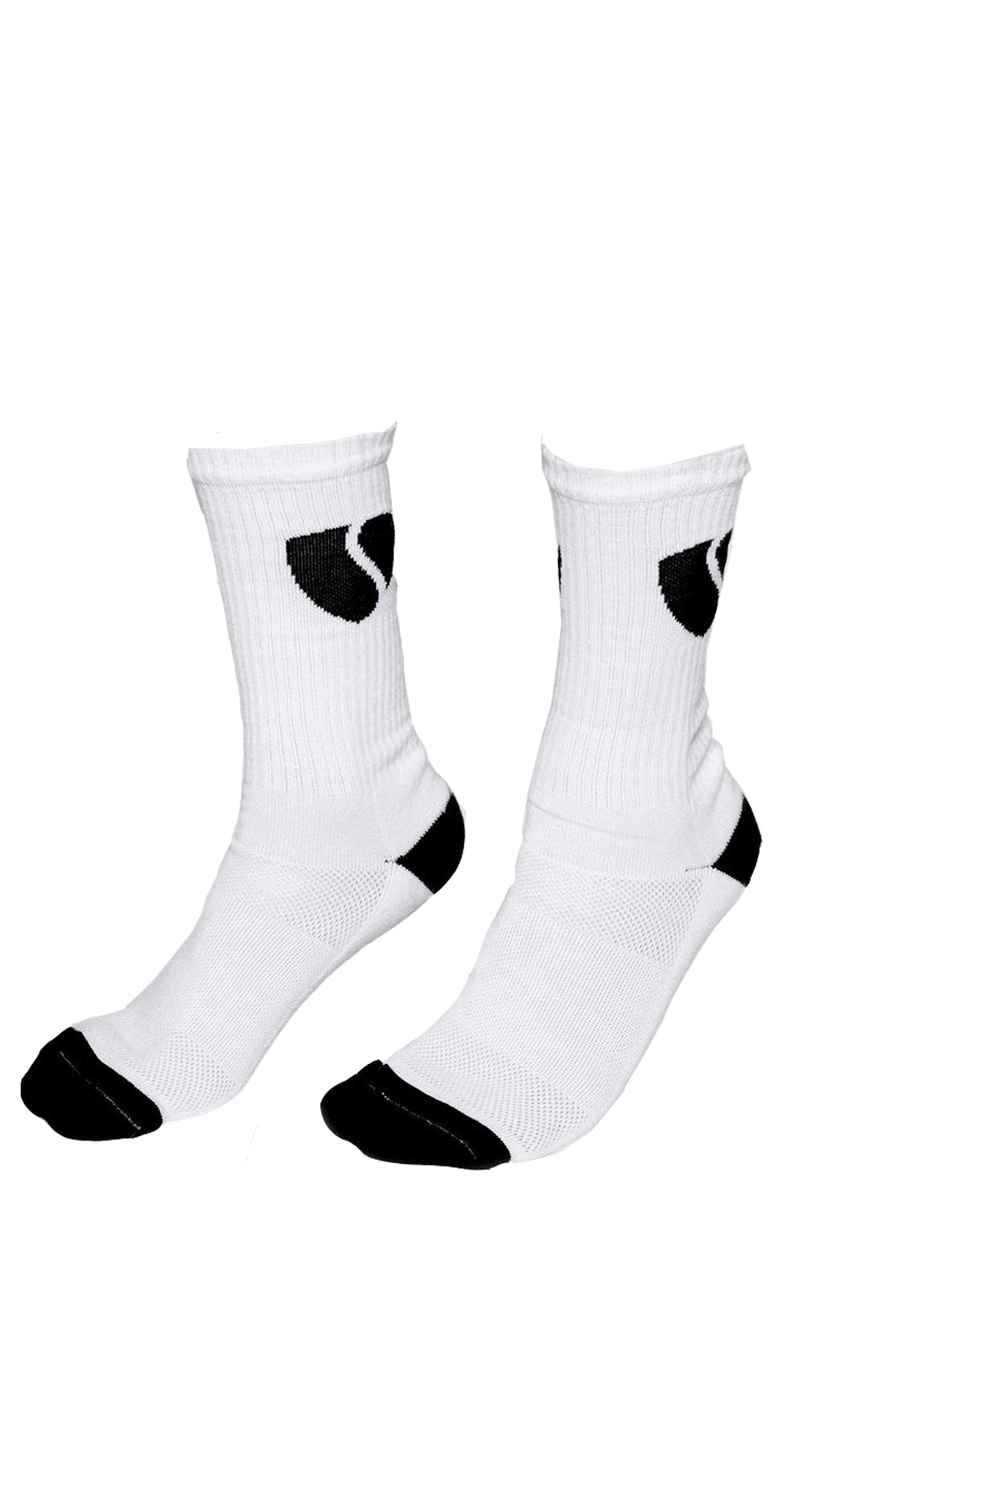 _SVIPE Socks - White/Black